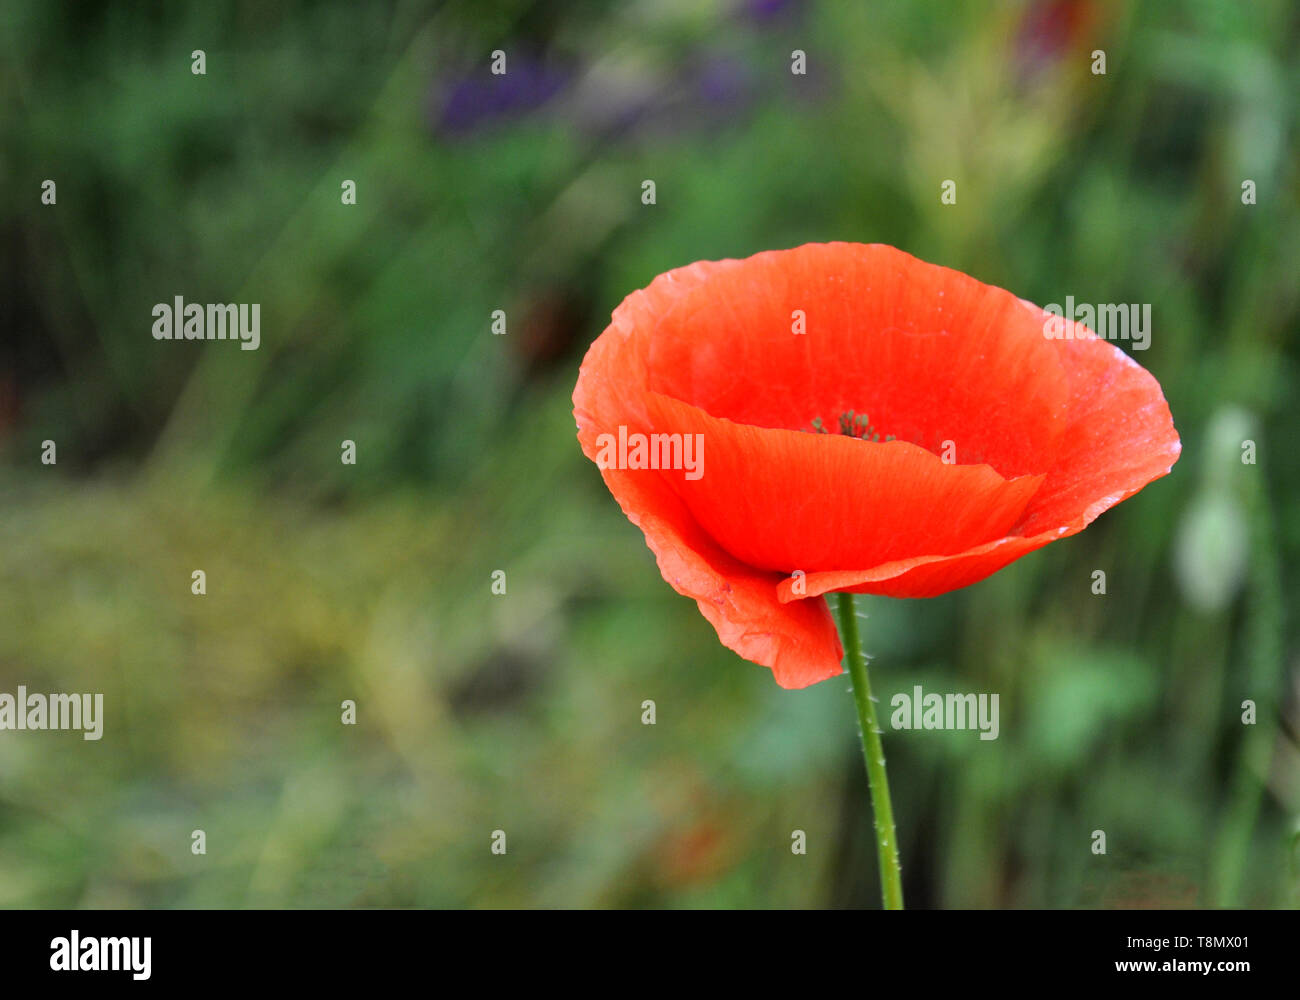 Red poppy on a green field on a sunny day. Spring field of poppies. - Stock Image